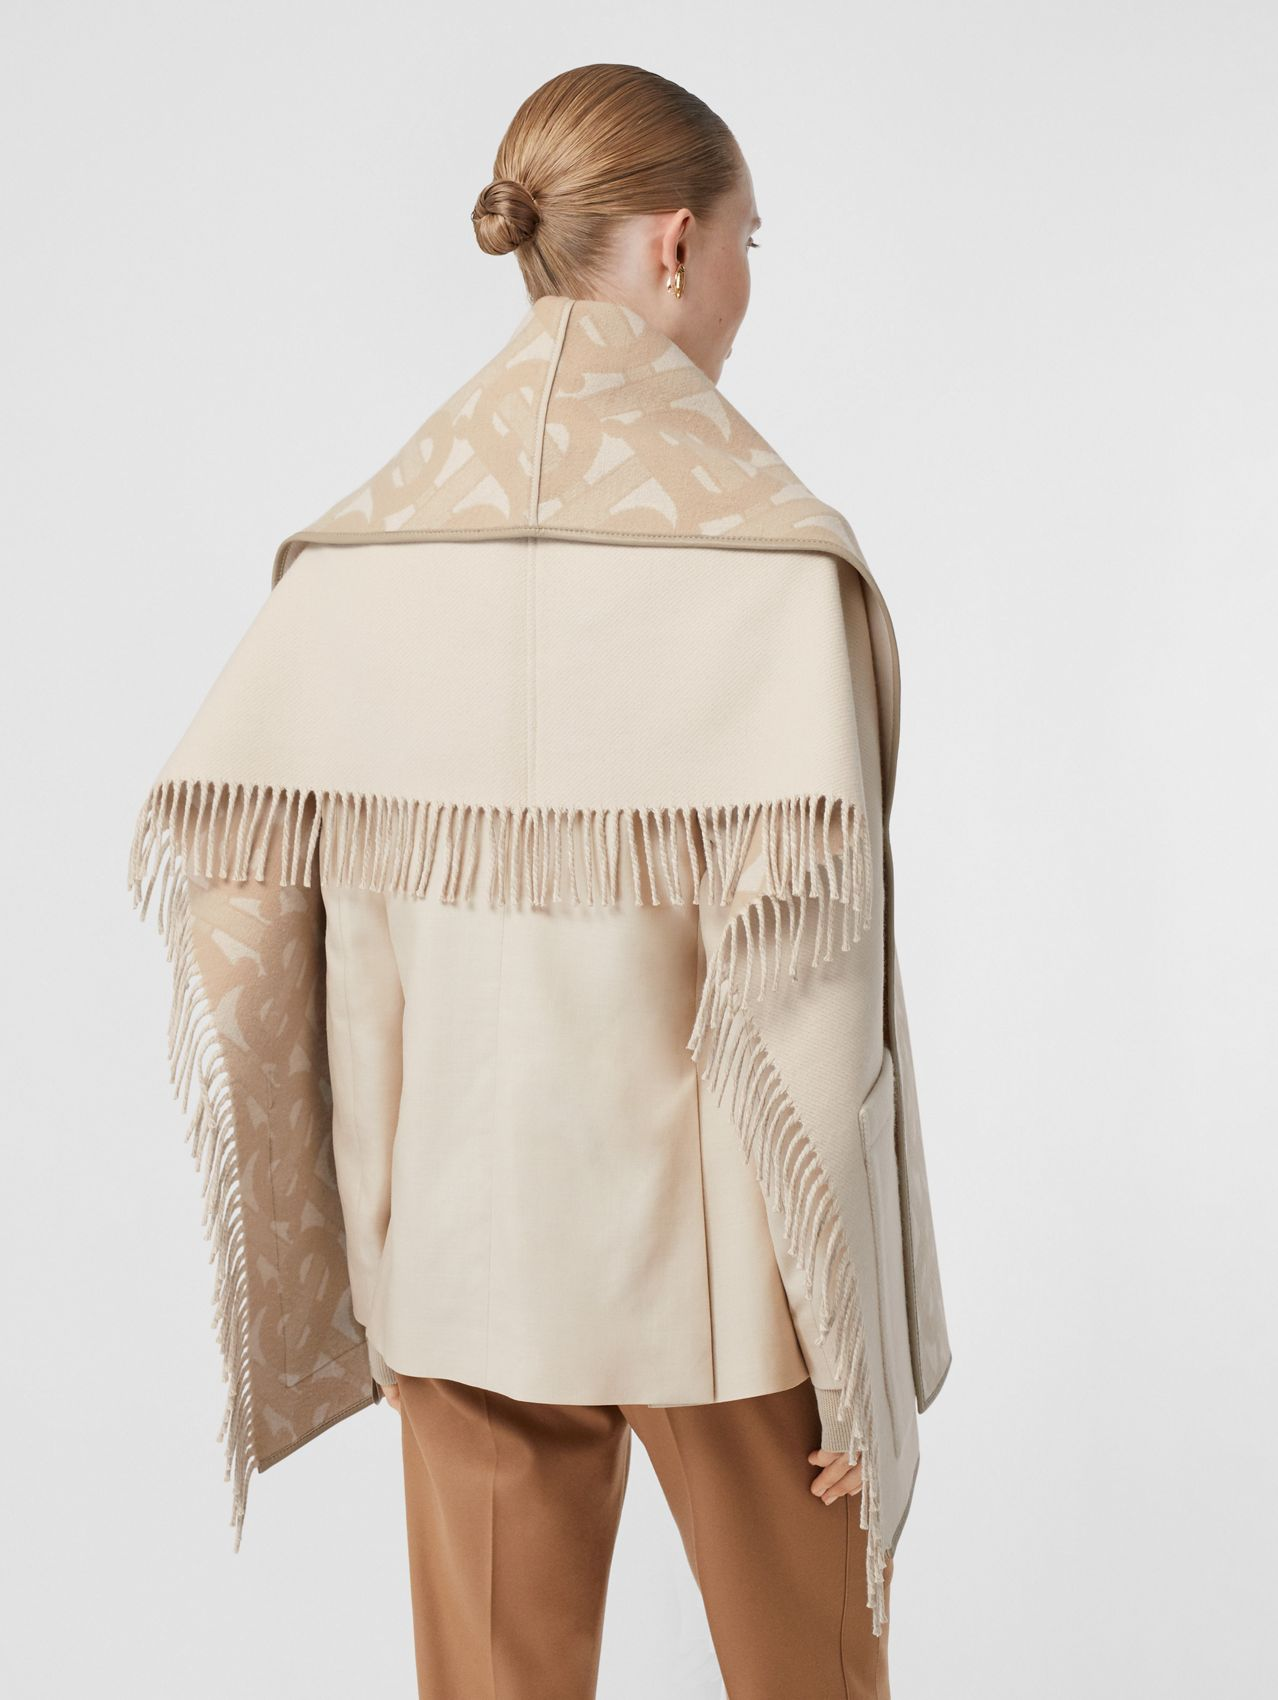 Monogram Merino Wool Cashmere Jacquard Cape in Soft Fawn